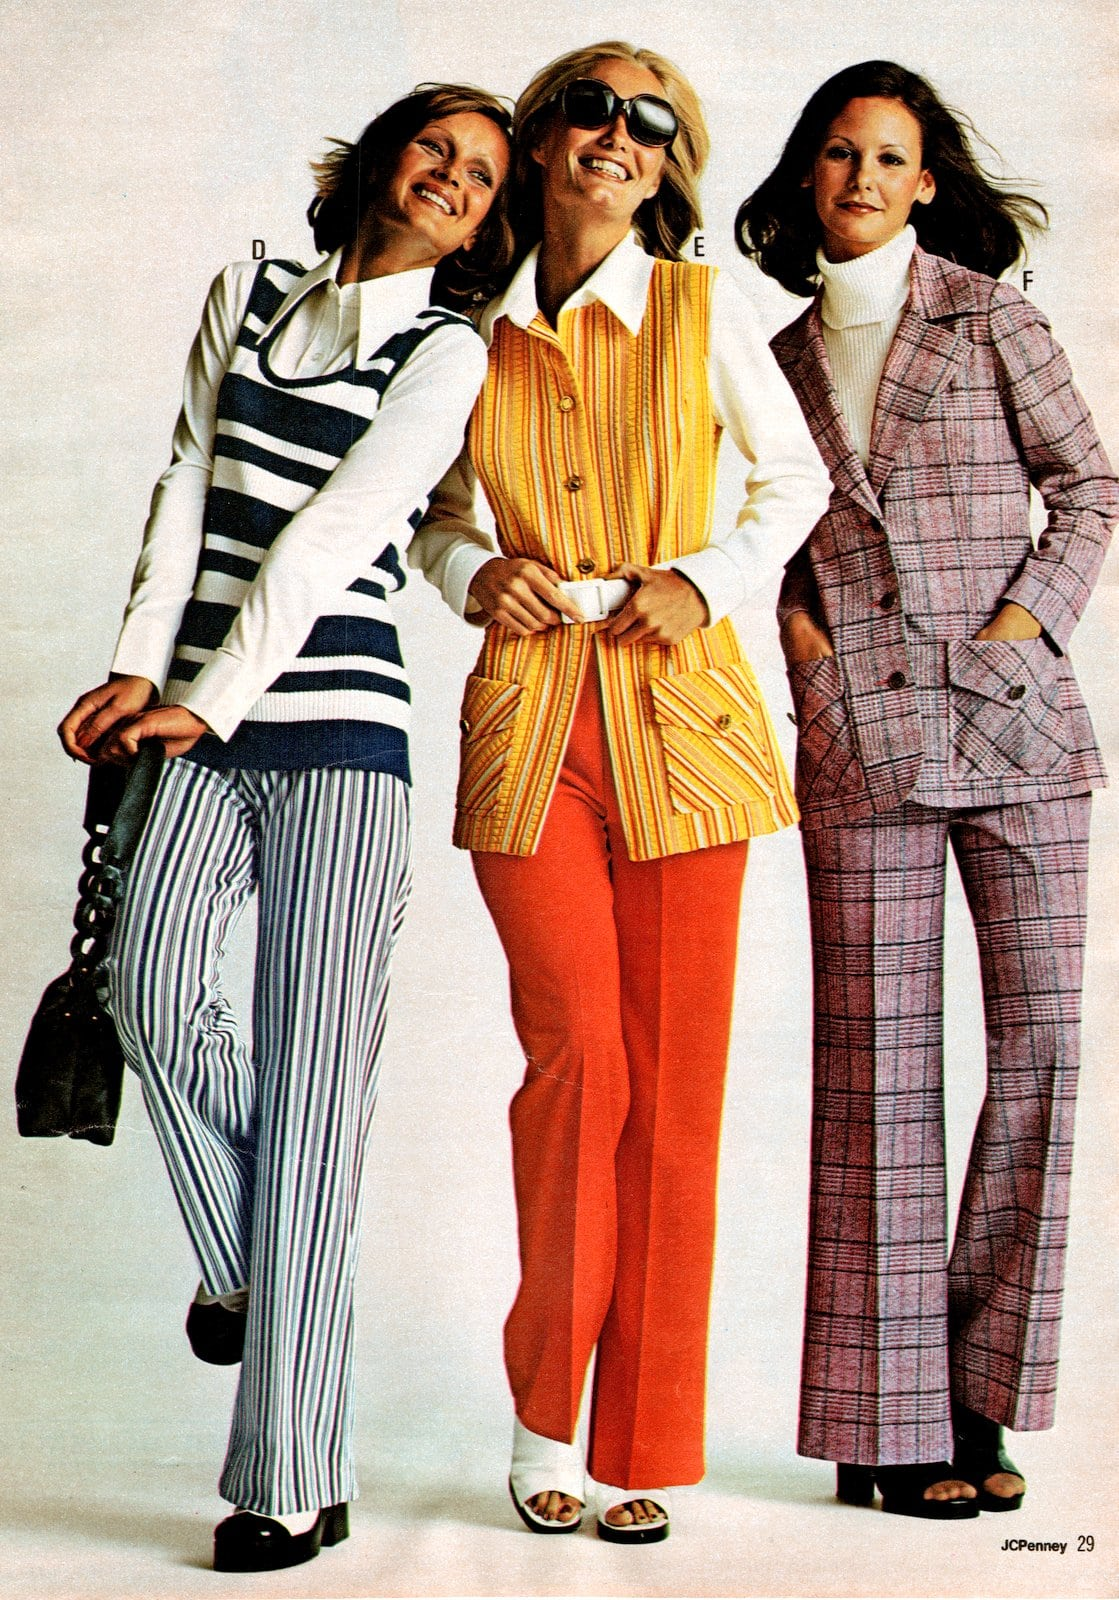 Women in casual colorful suits with pants (1973)